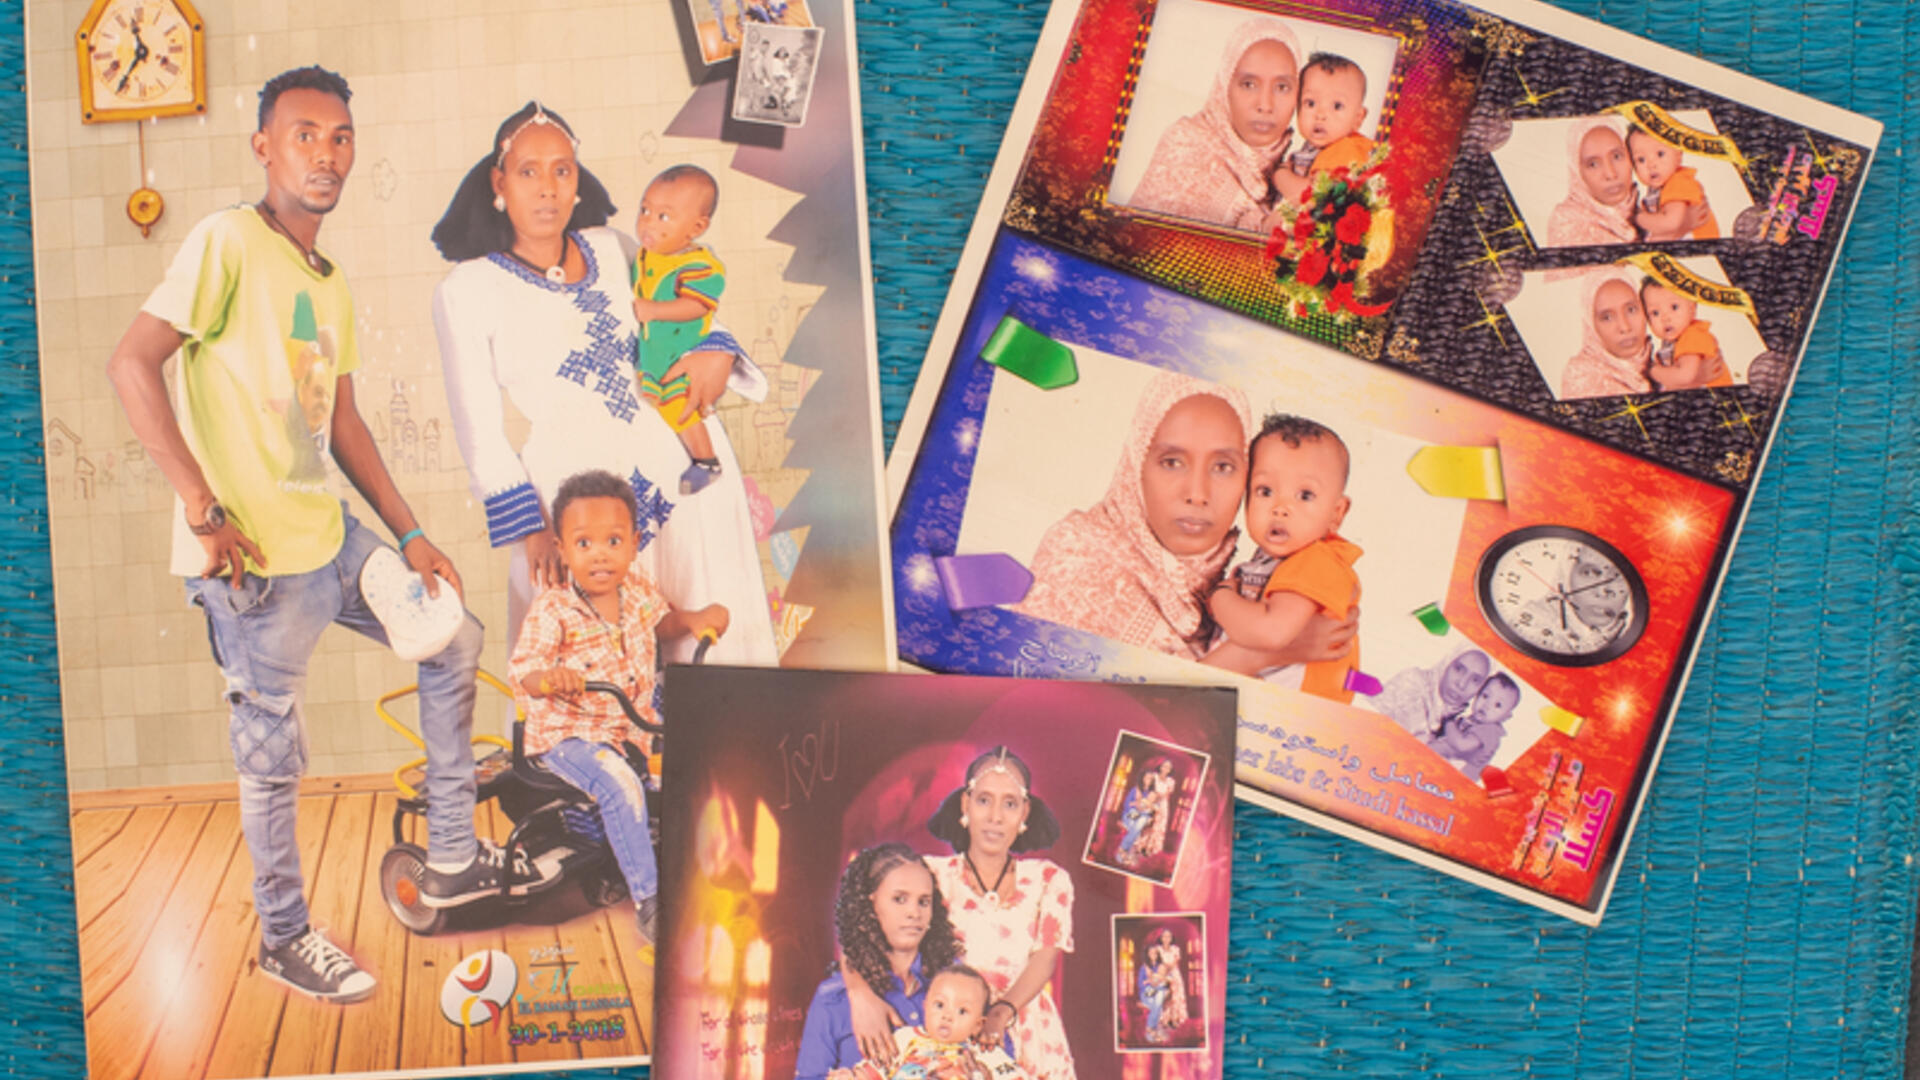 Mulu's old family photos.